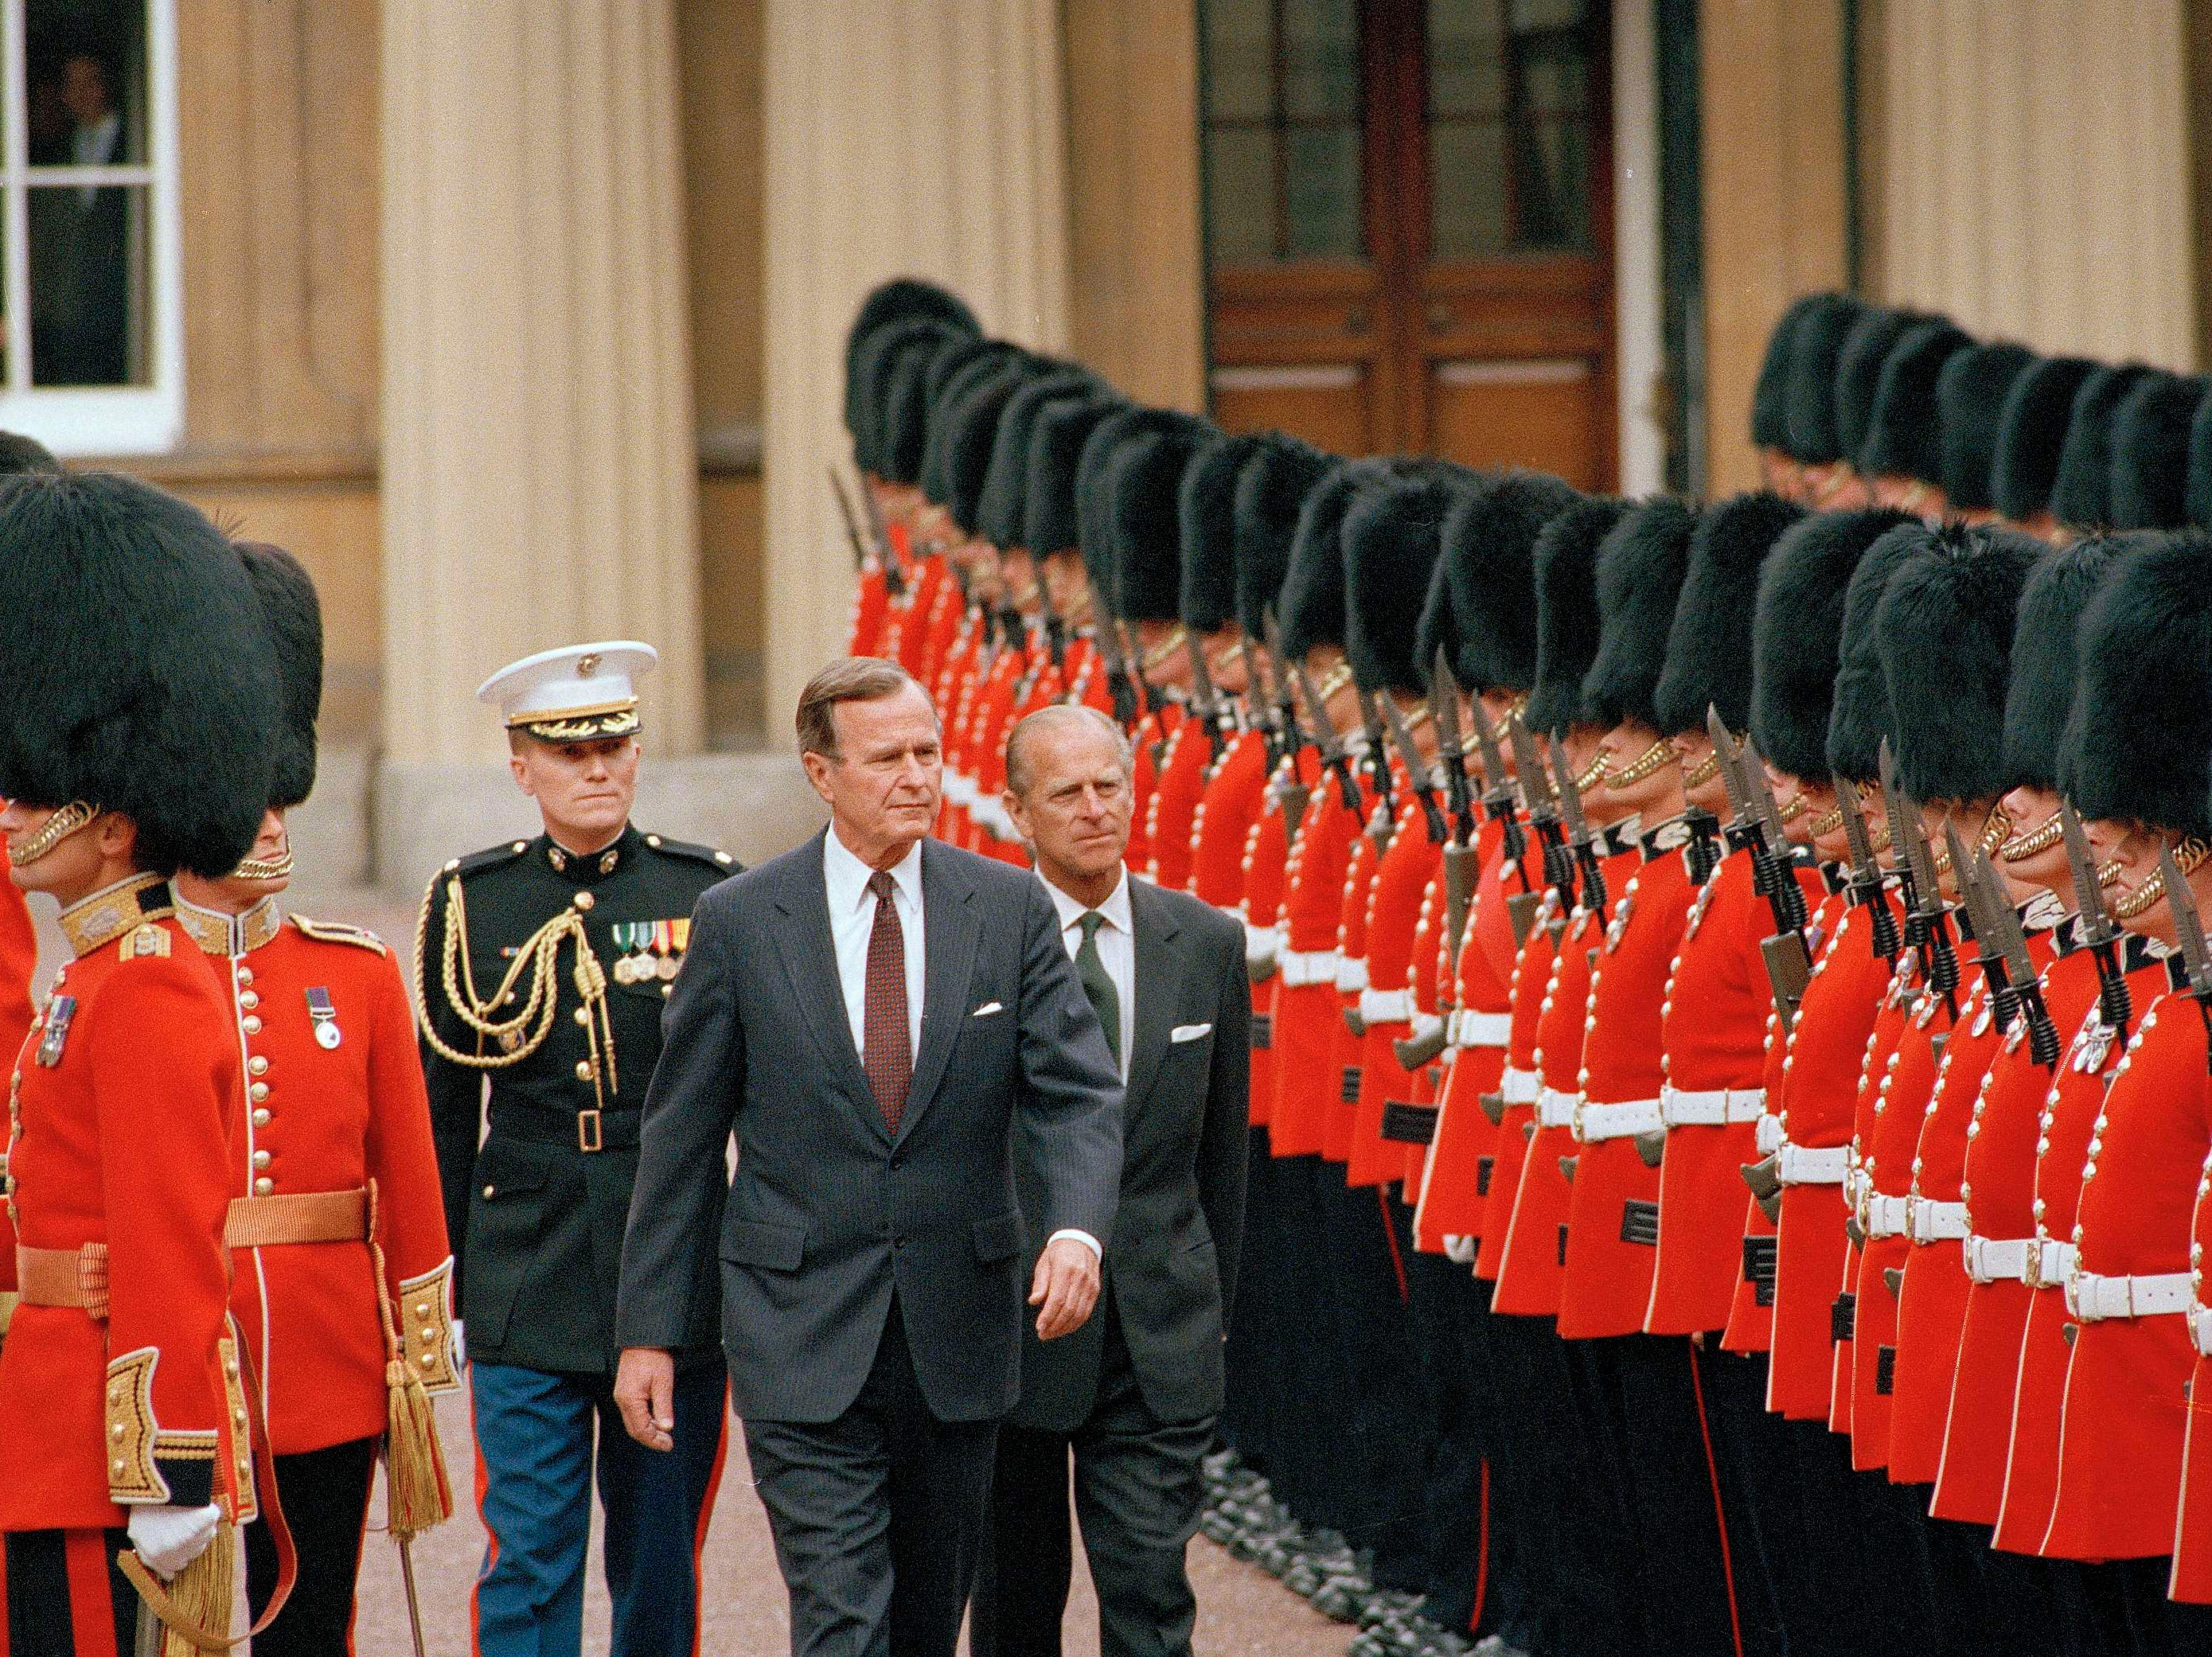 President George Bush and Prince Philip review a line of honor of the Scots Guards in the quadrangle of Buckingham Palace in London, June 1, 1989. (AP Photo/Dennis Cook)